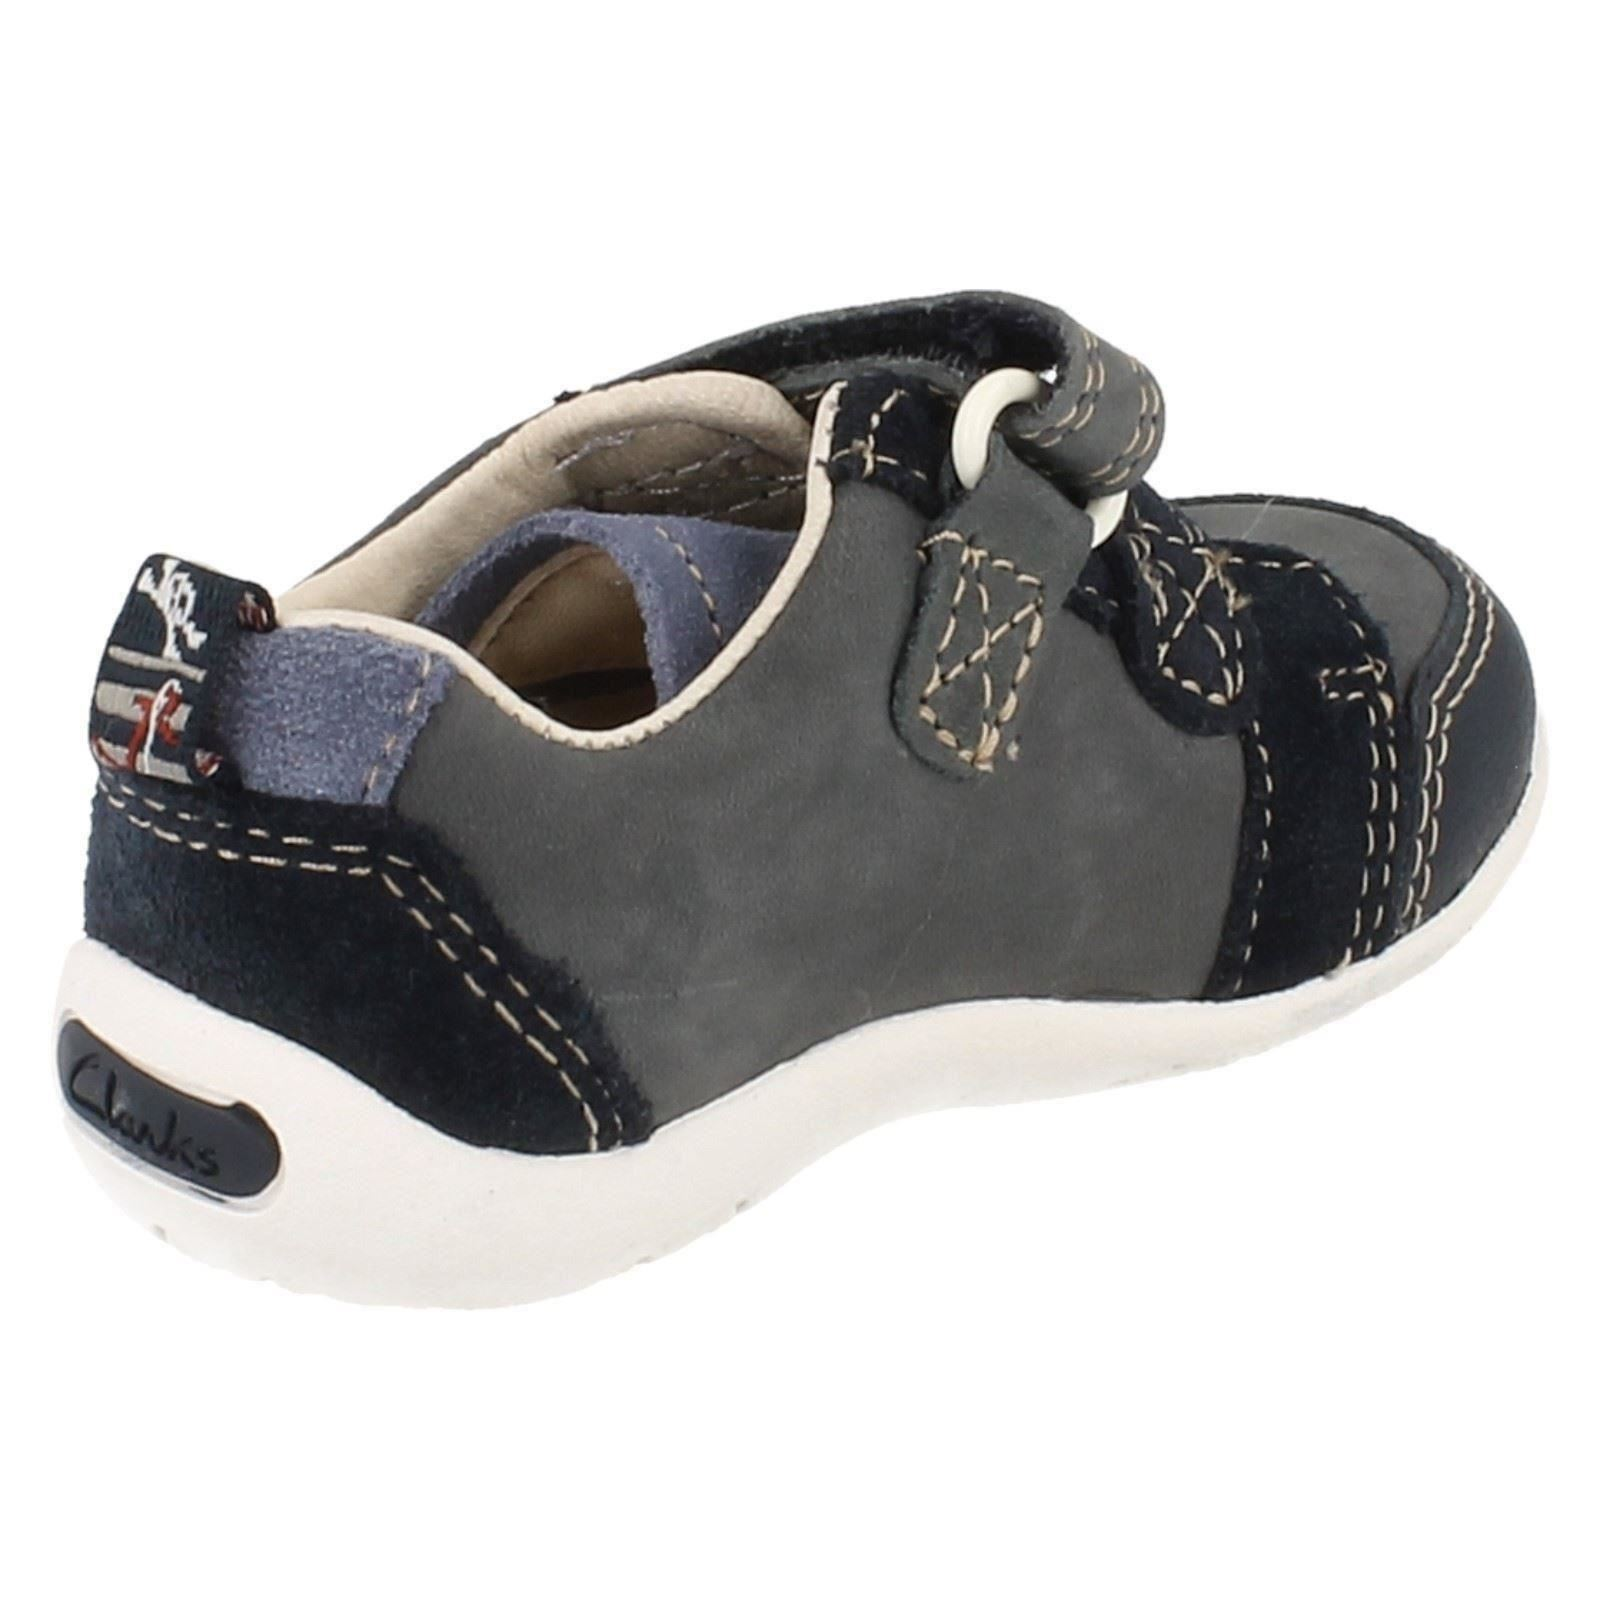 Chicos Clarks Zapatos Informales 'Softly Tot'